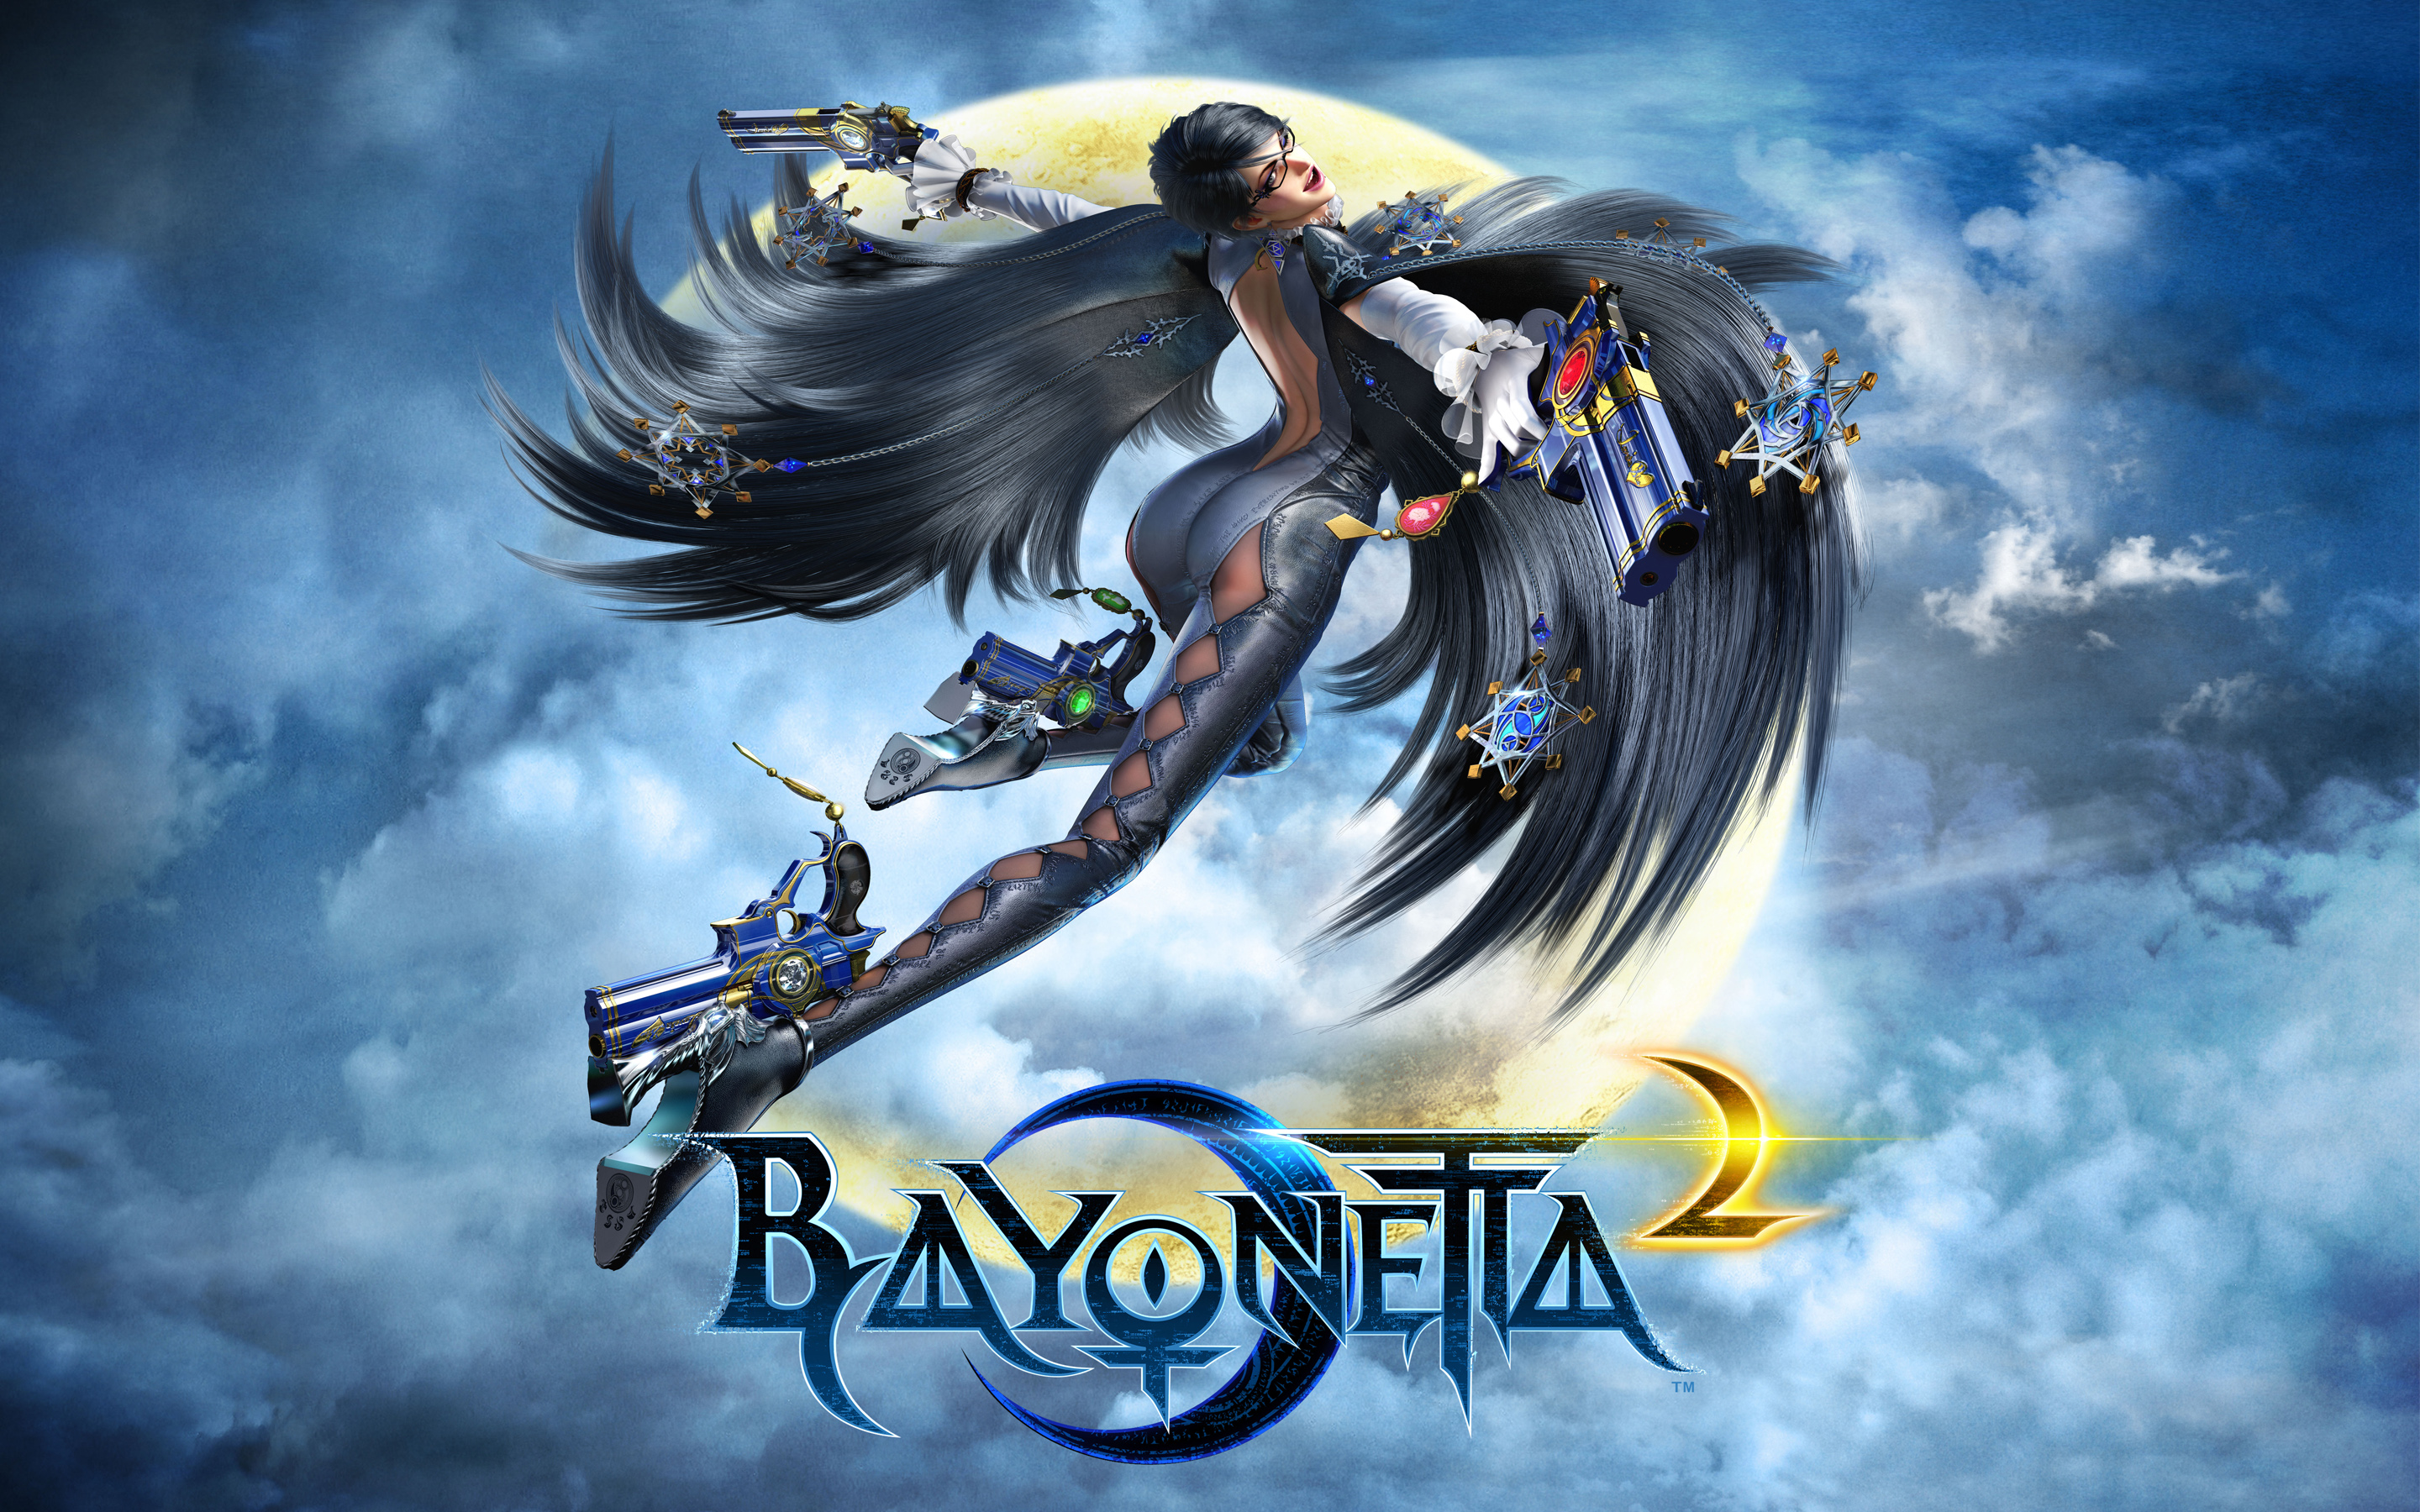 Bayonetta 2 2014 Game 1632.7 Kb